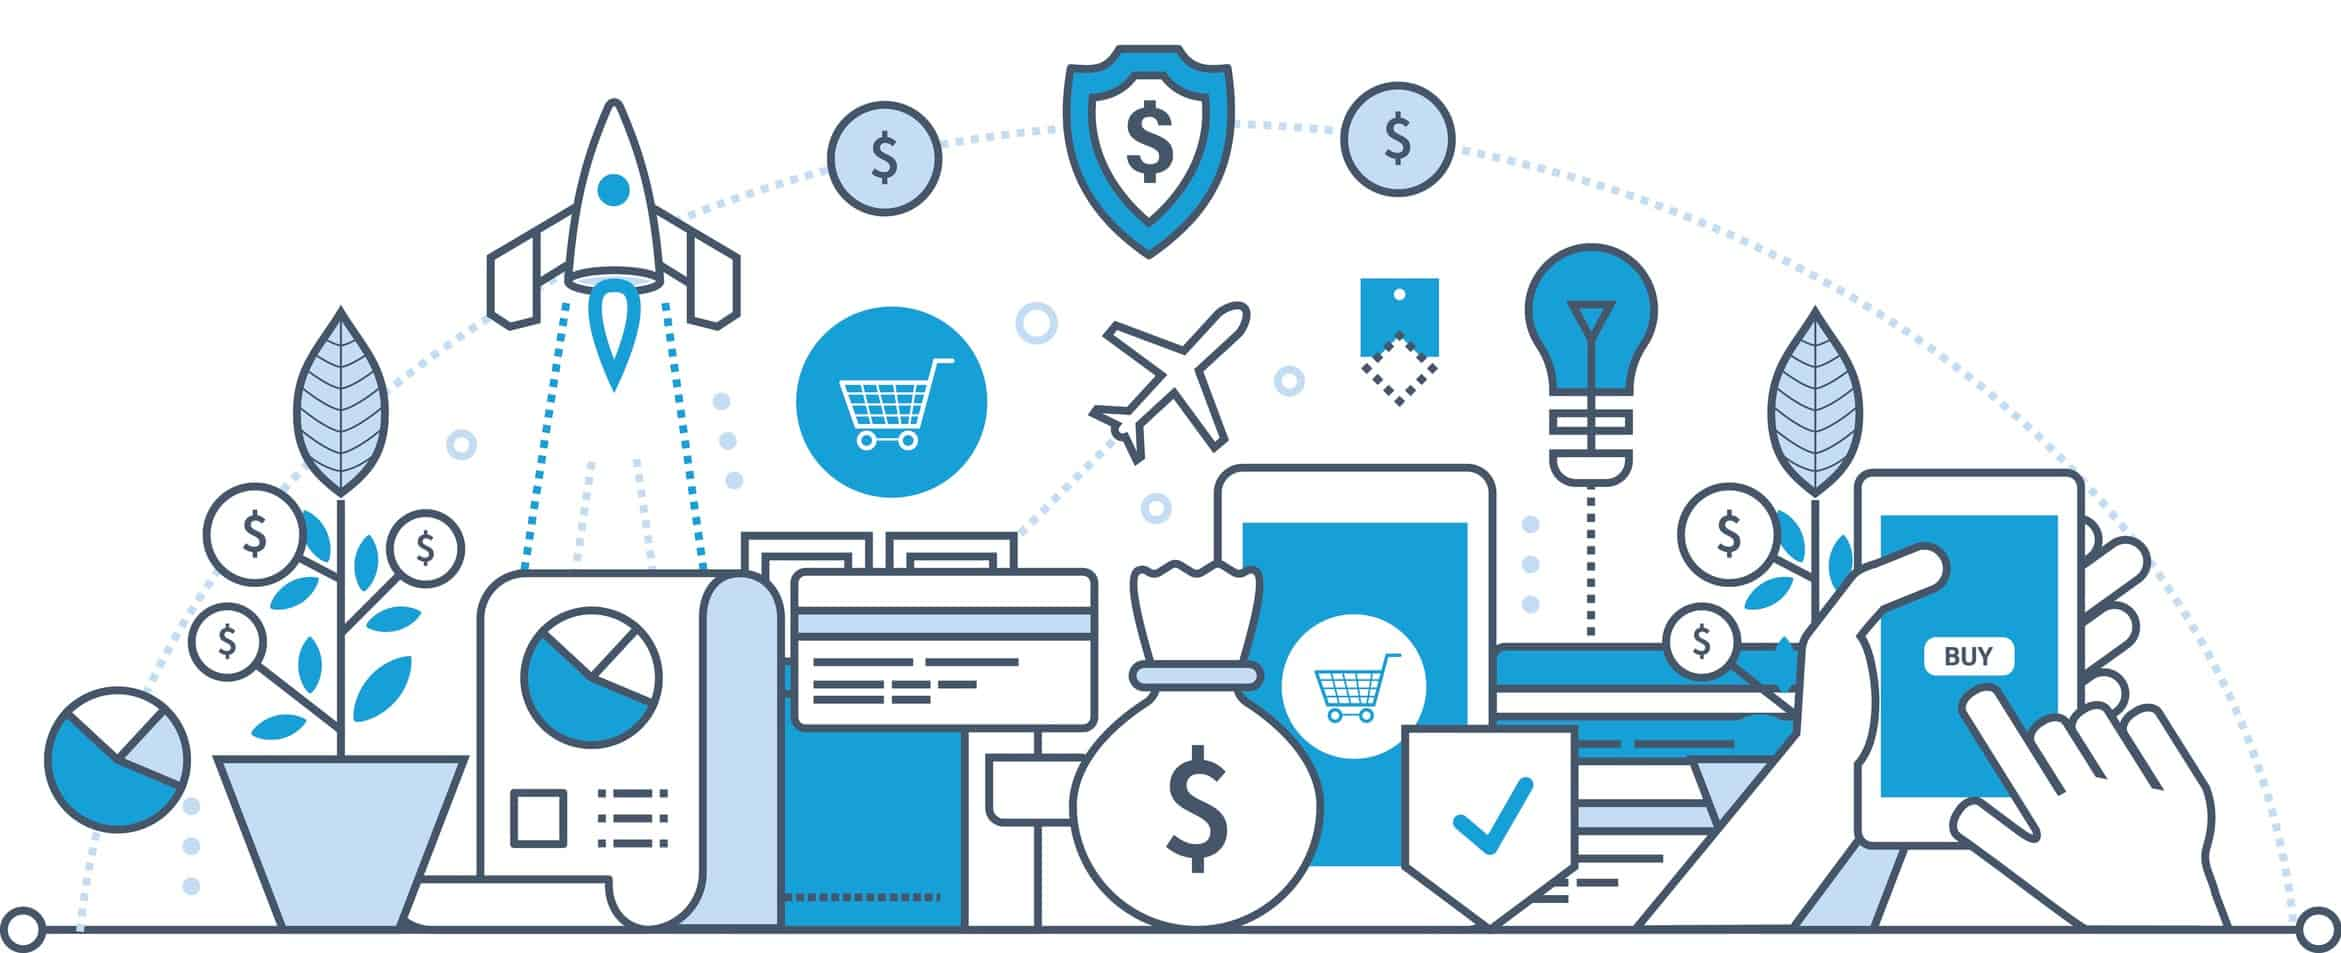 Expertise Icon Images Stock Photos amp Vectors  Shutterstock